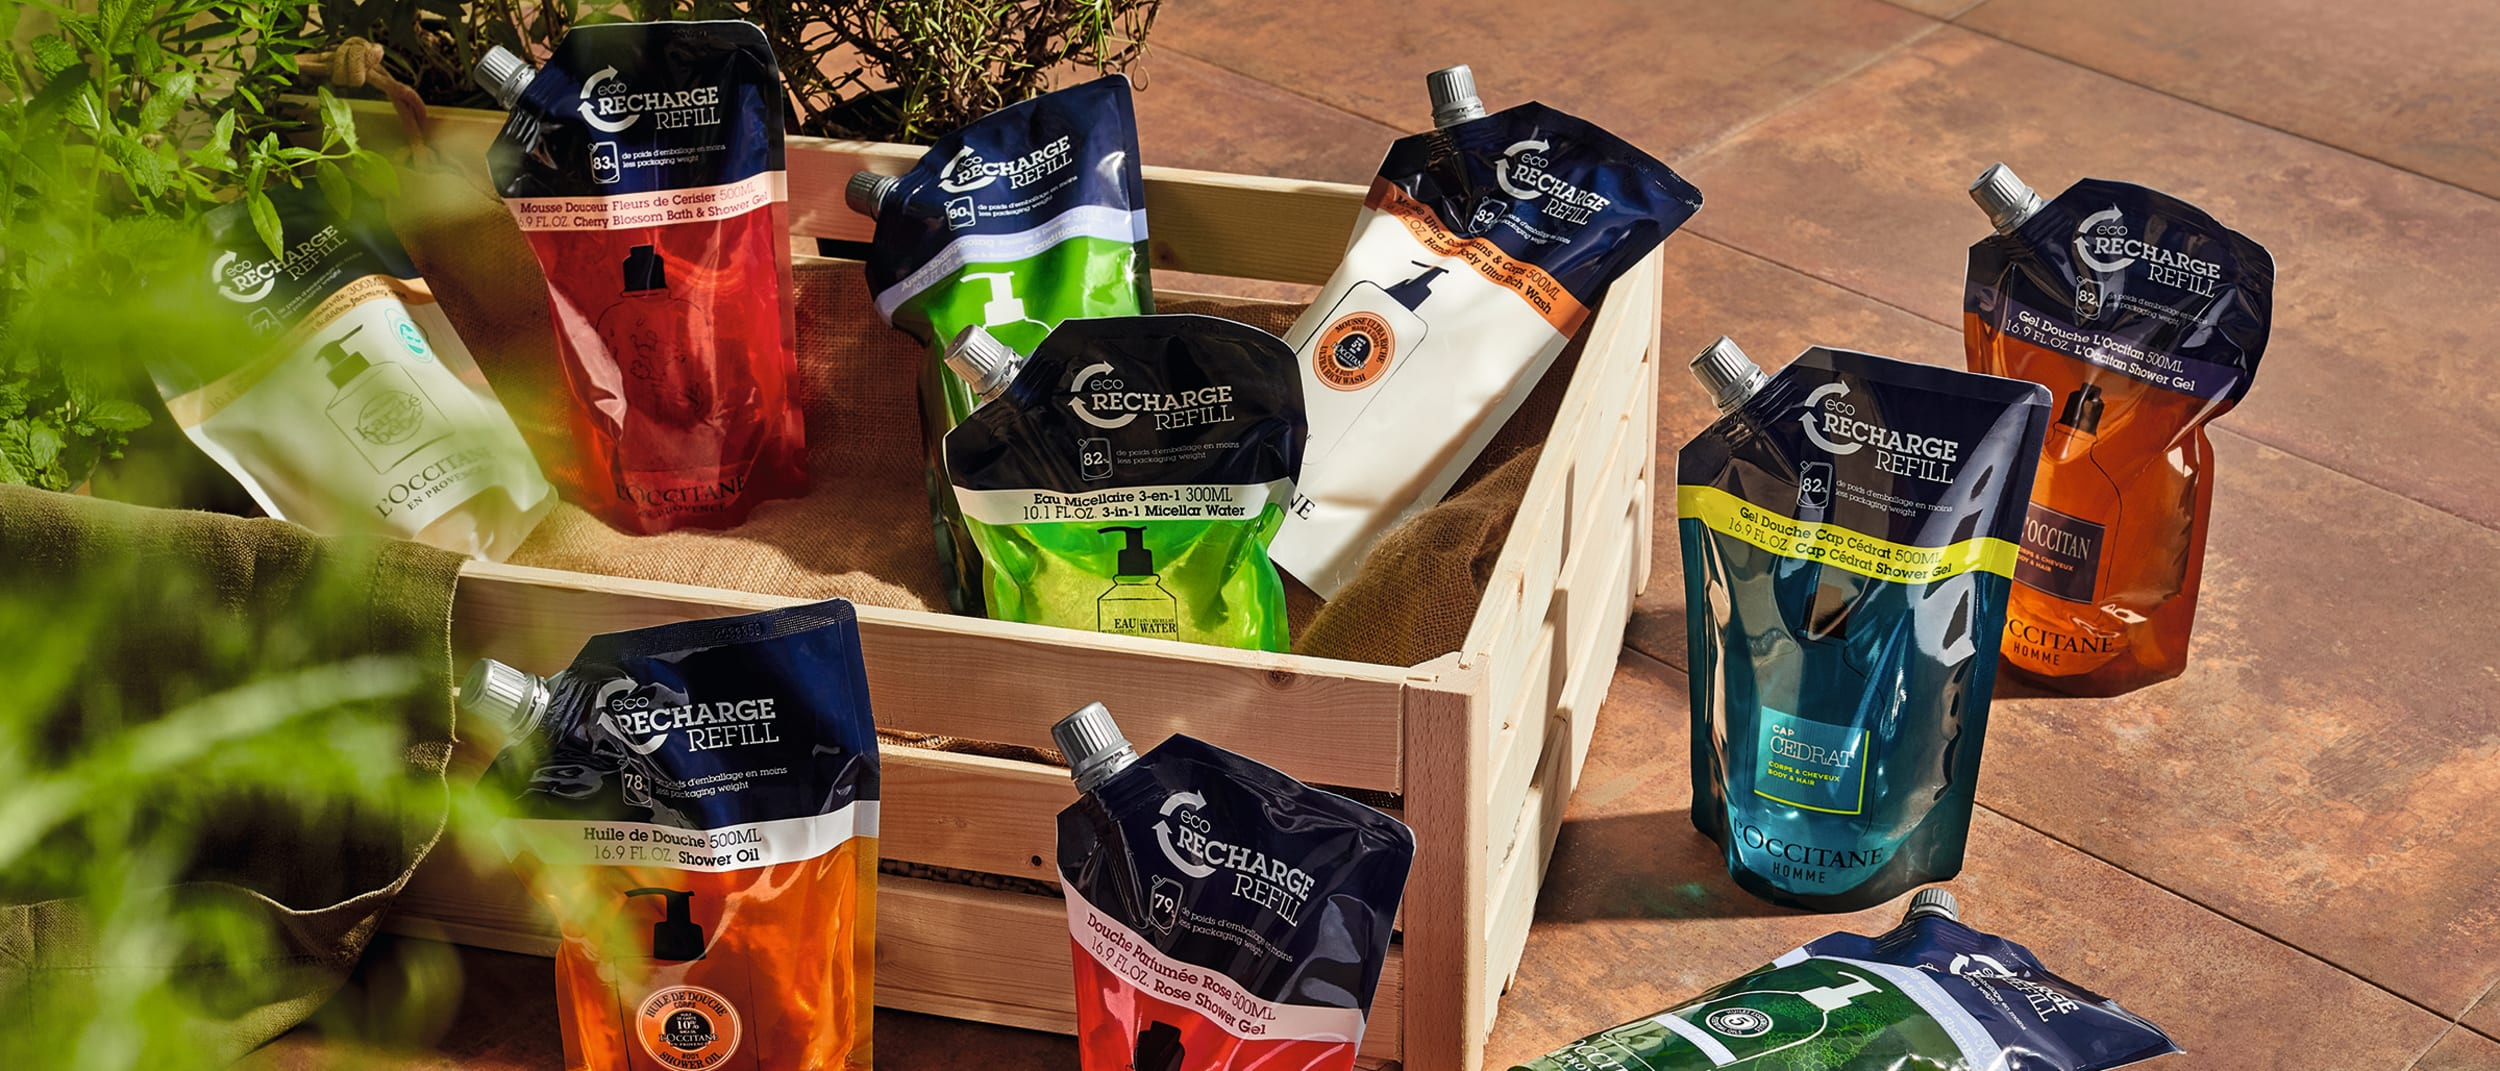 L'OCCITANE: Discover your exclusive Eco-Refill offers